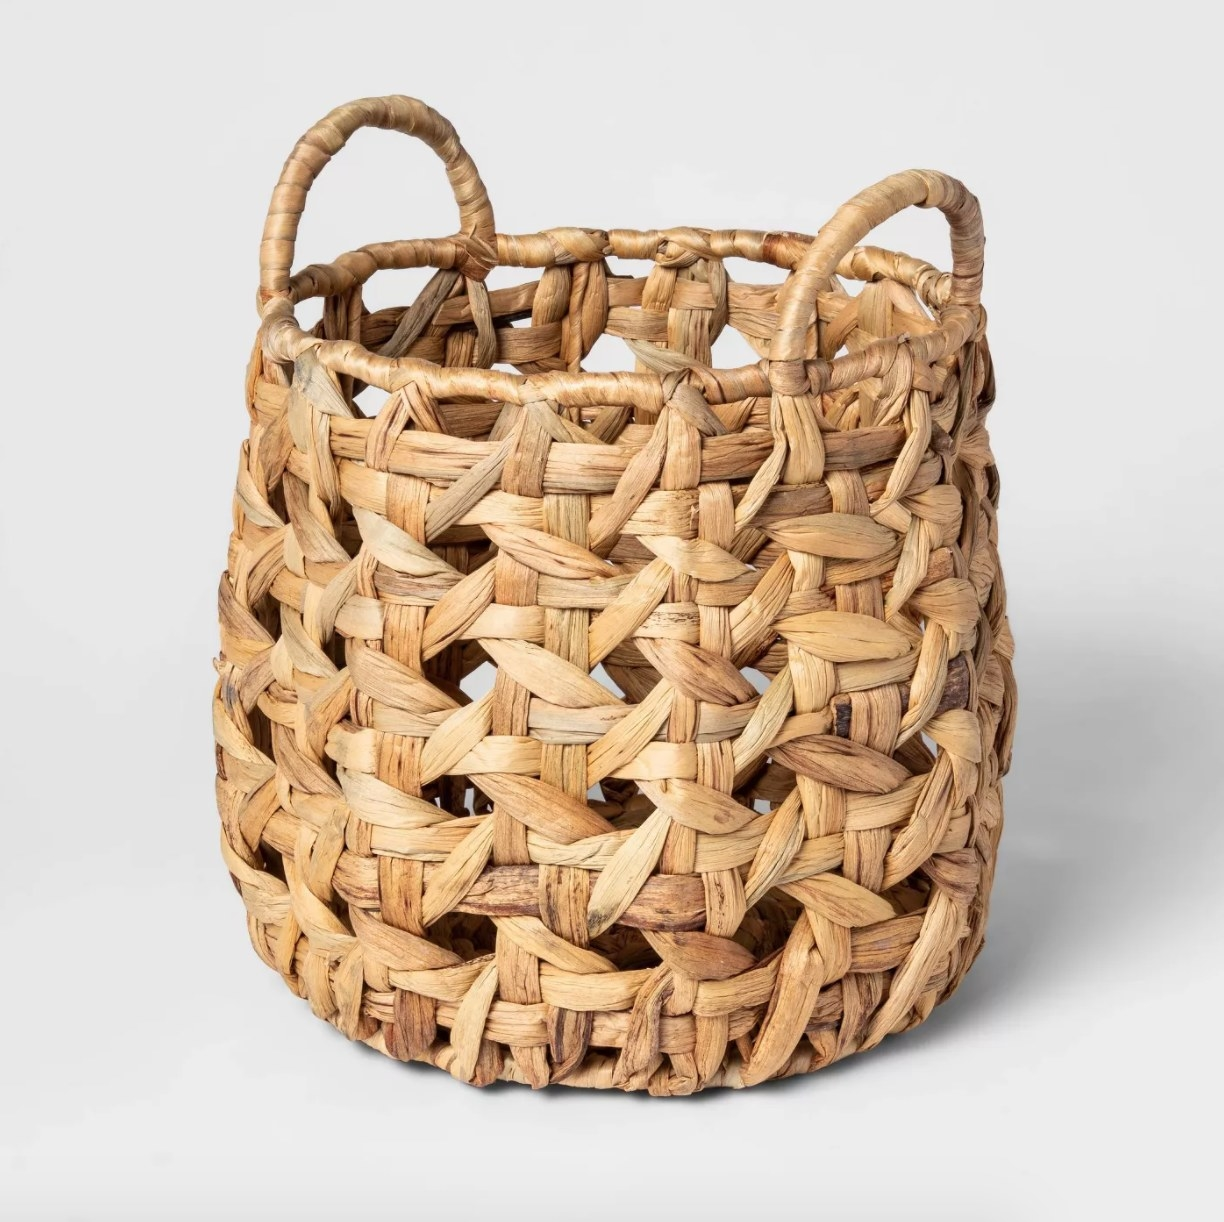 A woven basket made from water hyacinth with handles